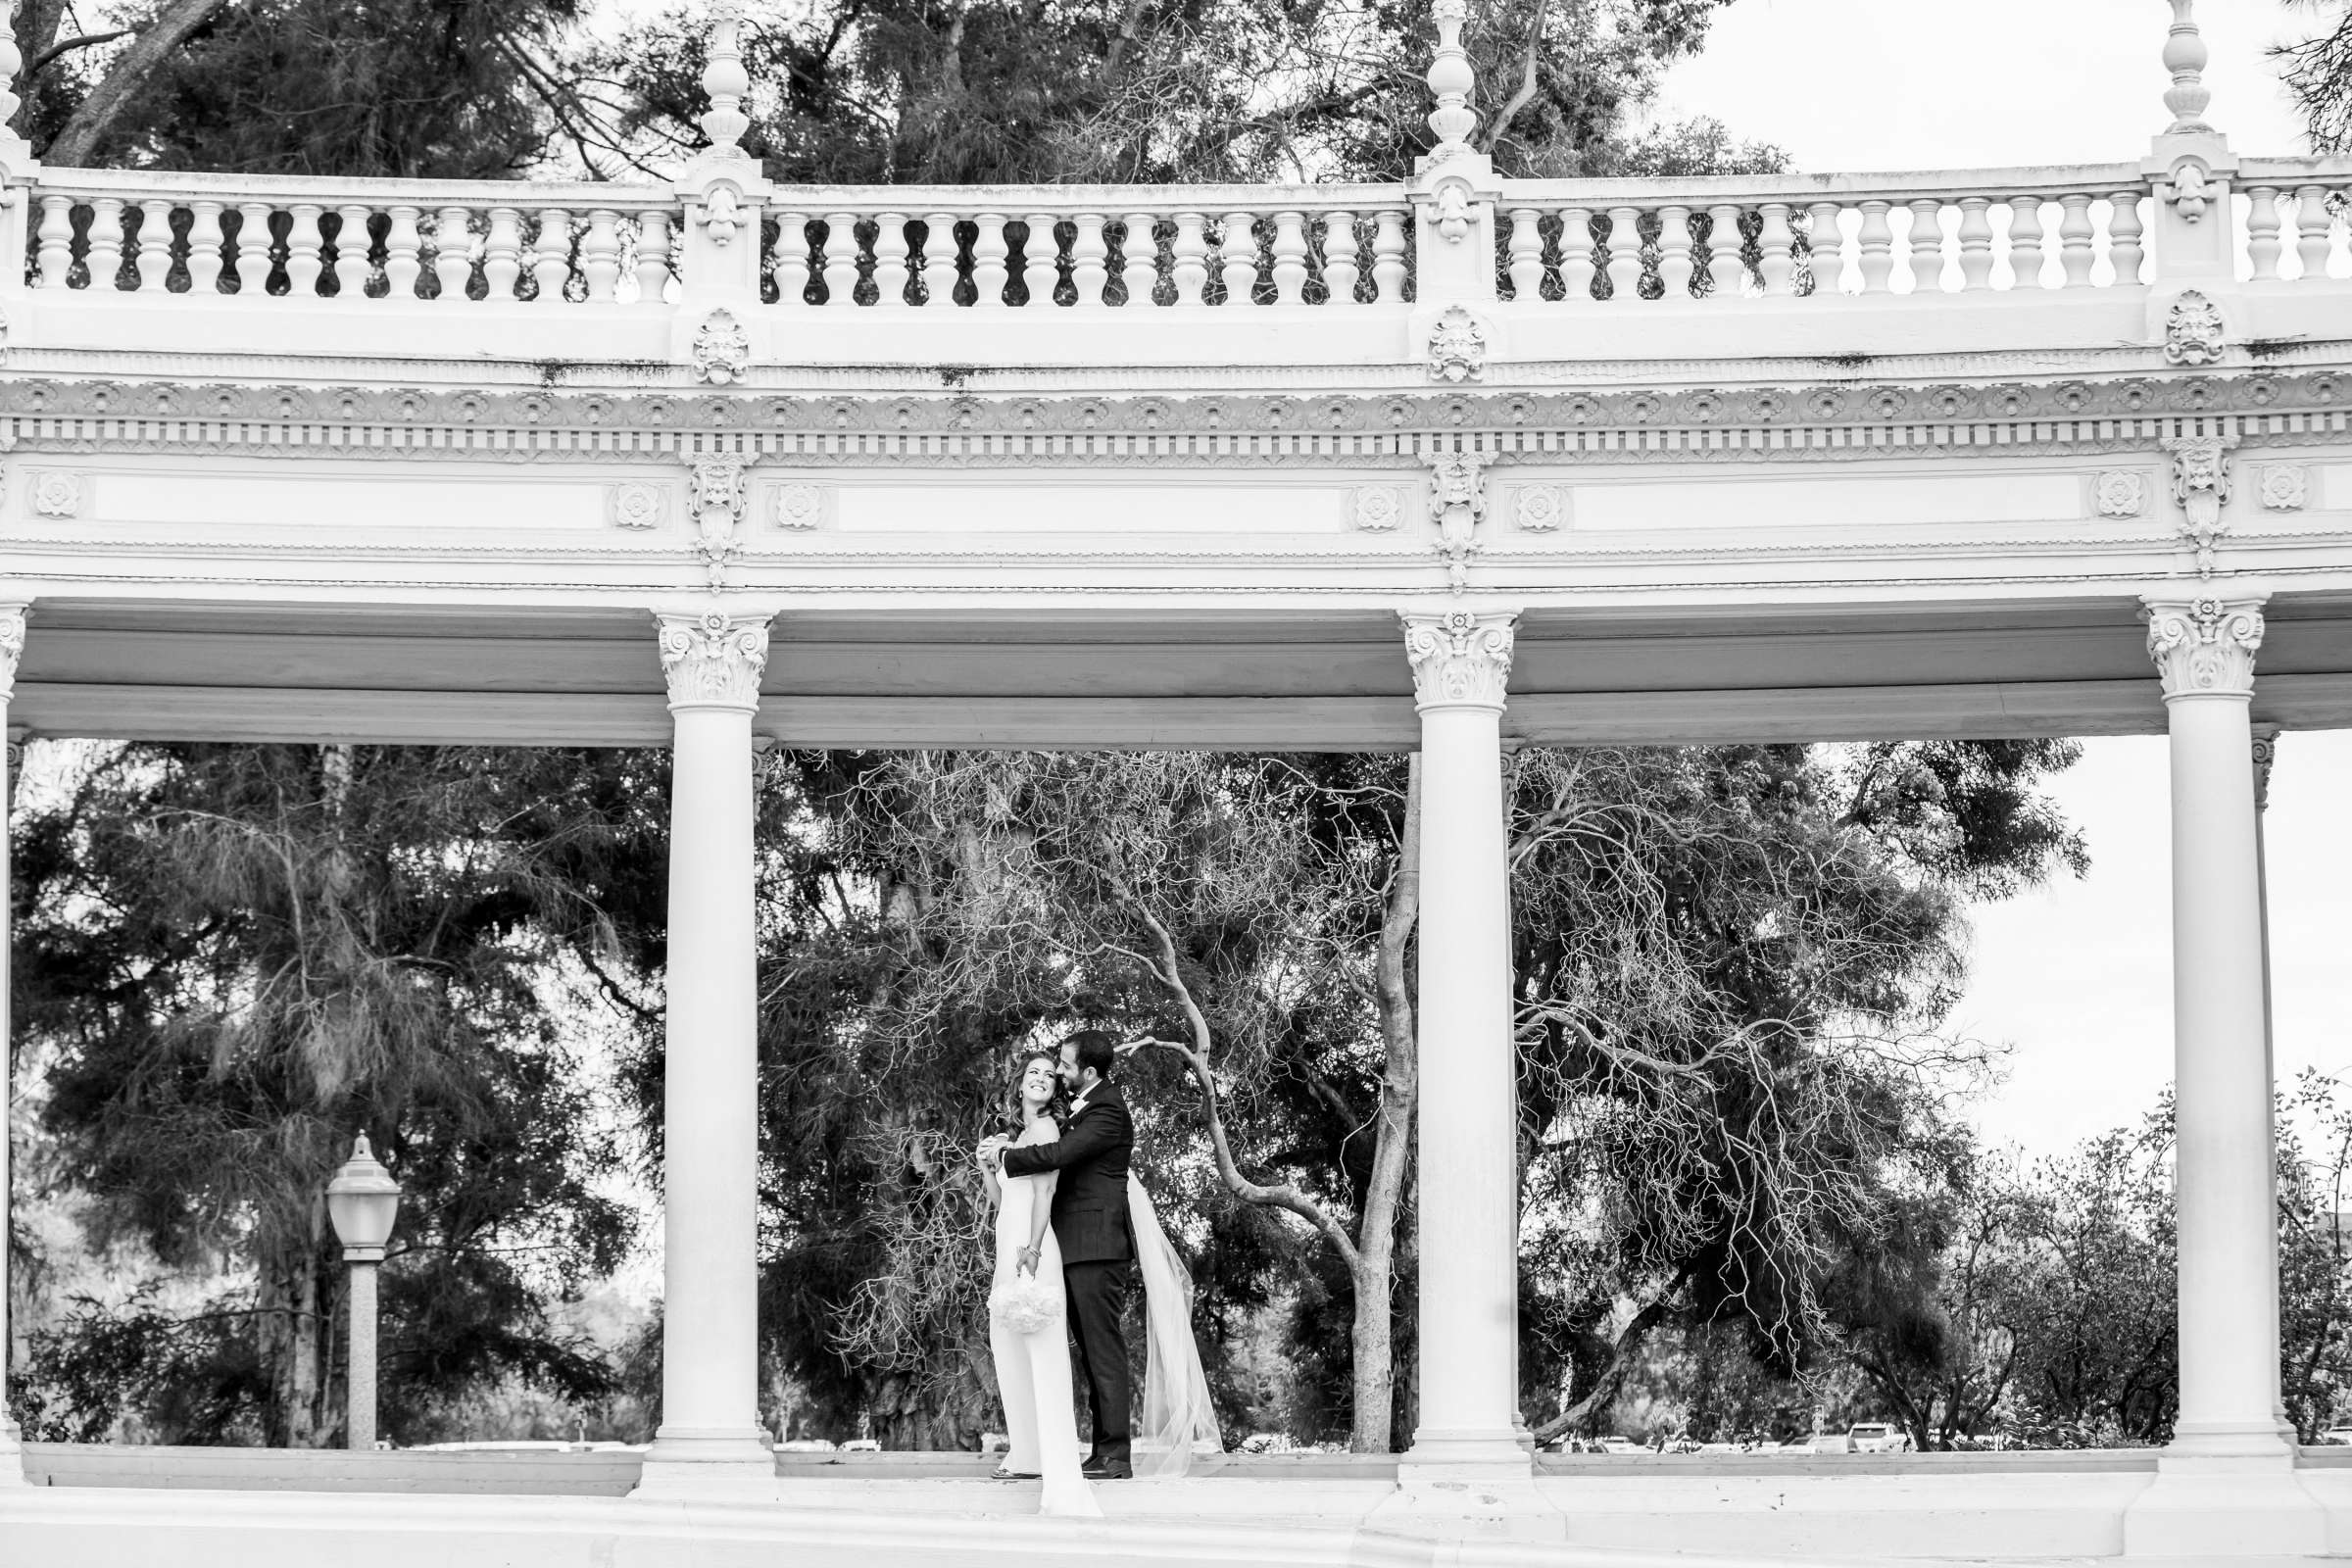 San Diego Museum of Art Wedding coordinated by First Comes Love Weddings & Events, Ruthie and Larry Wedding Photo #236828 by True Photography